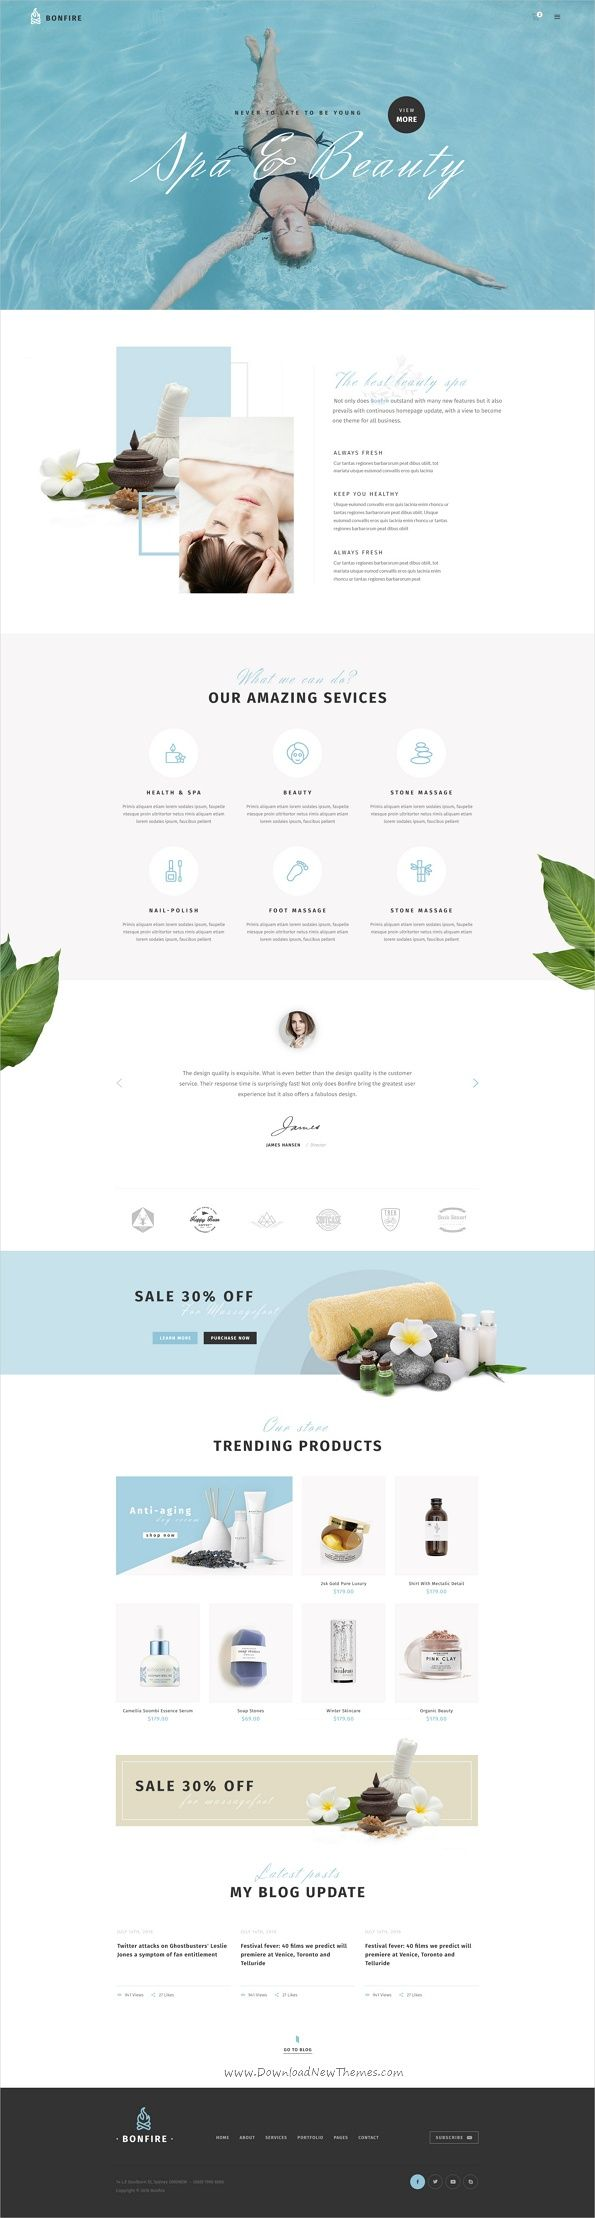 Bonfire is a creative multipurpose #Photoshop template for a range of #spa #center business & corporation like fashion store, creative agency, web studios, freelancers, shop, interior shop, architecture portfolio websites Comes with 18+ stunning Pre-defined Homepages & 44 organized PSD pages download now➩ https://themeforest.net/item/bonfire-creative-multipurpose-psd-template/19267643?ref=Datasata